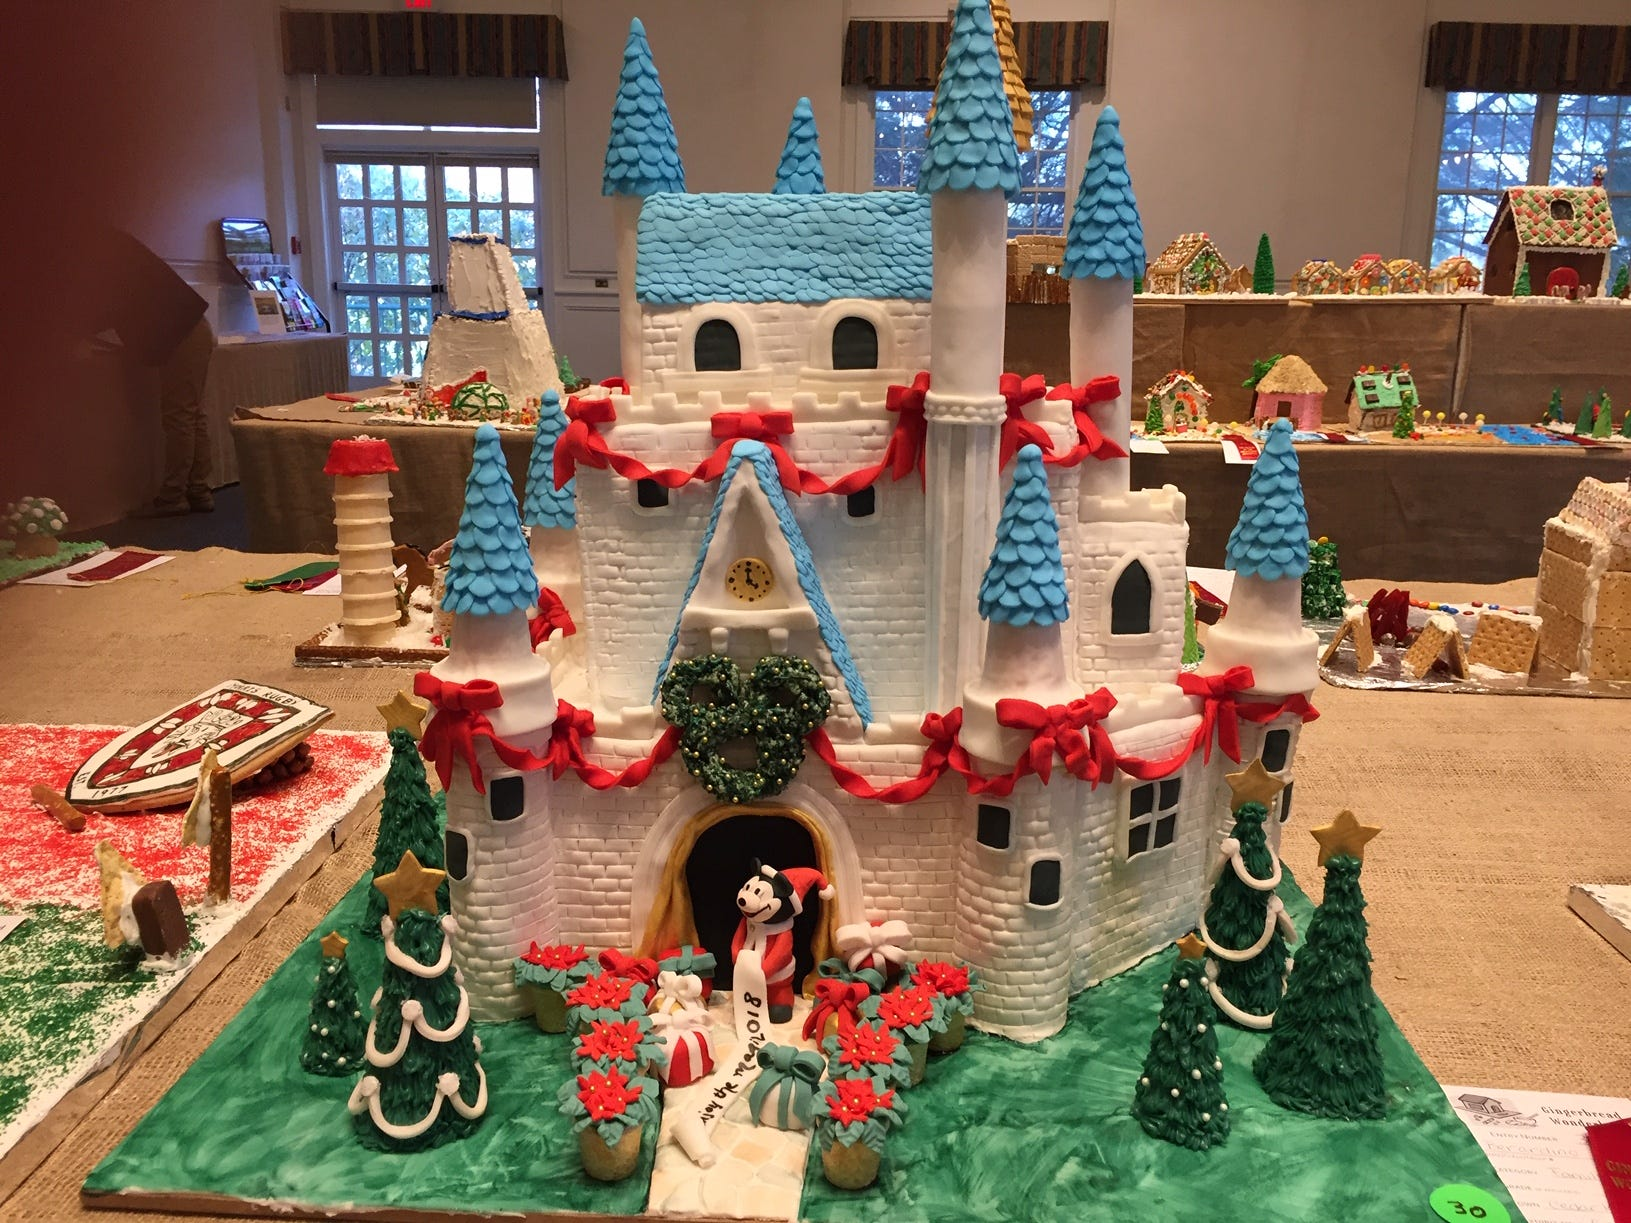 """Enjoy the Magic"" by the Bernardino Family of Cedar Knolls, at the 2018 Gingerbread Wonderland at the Frelinghuysen Arboretum. Family category."